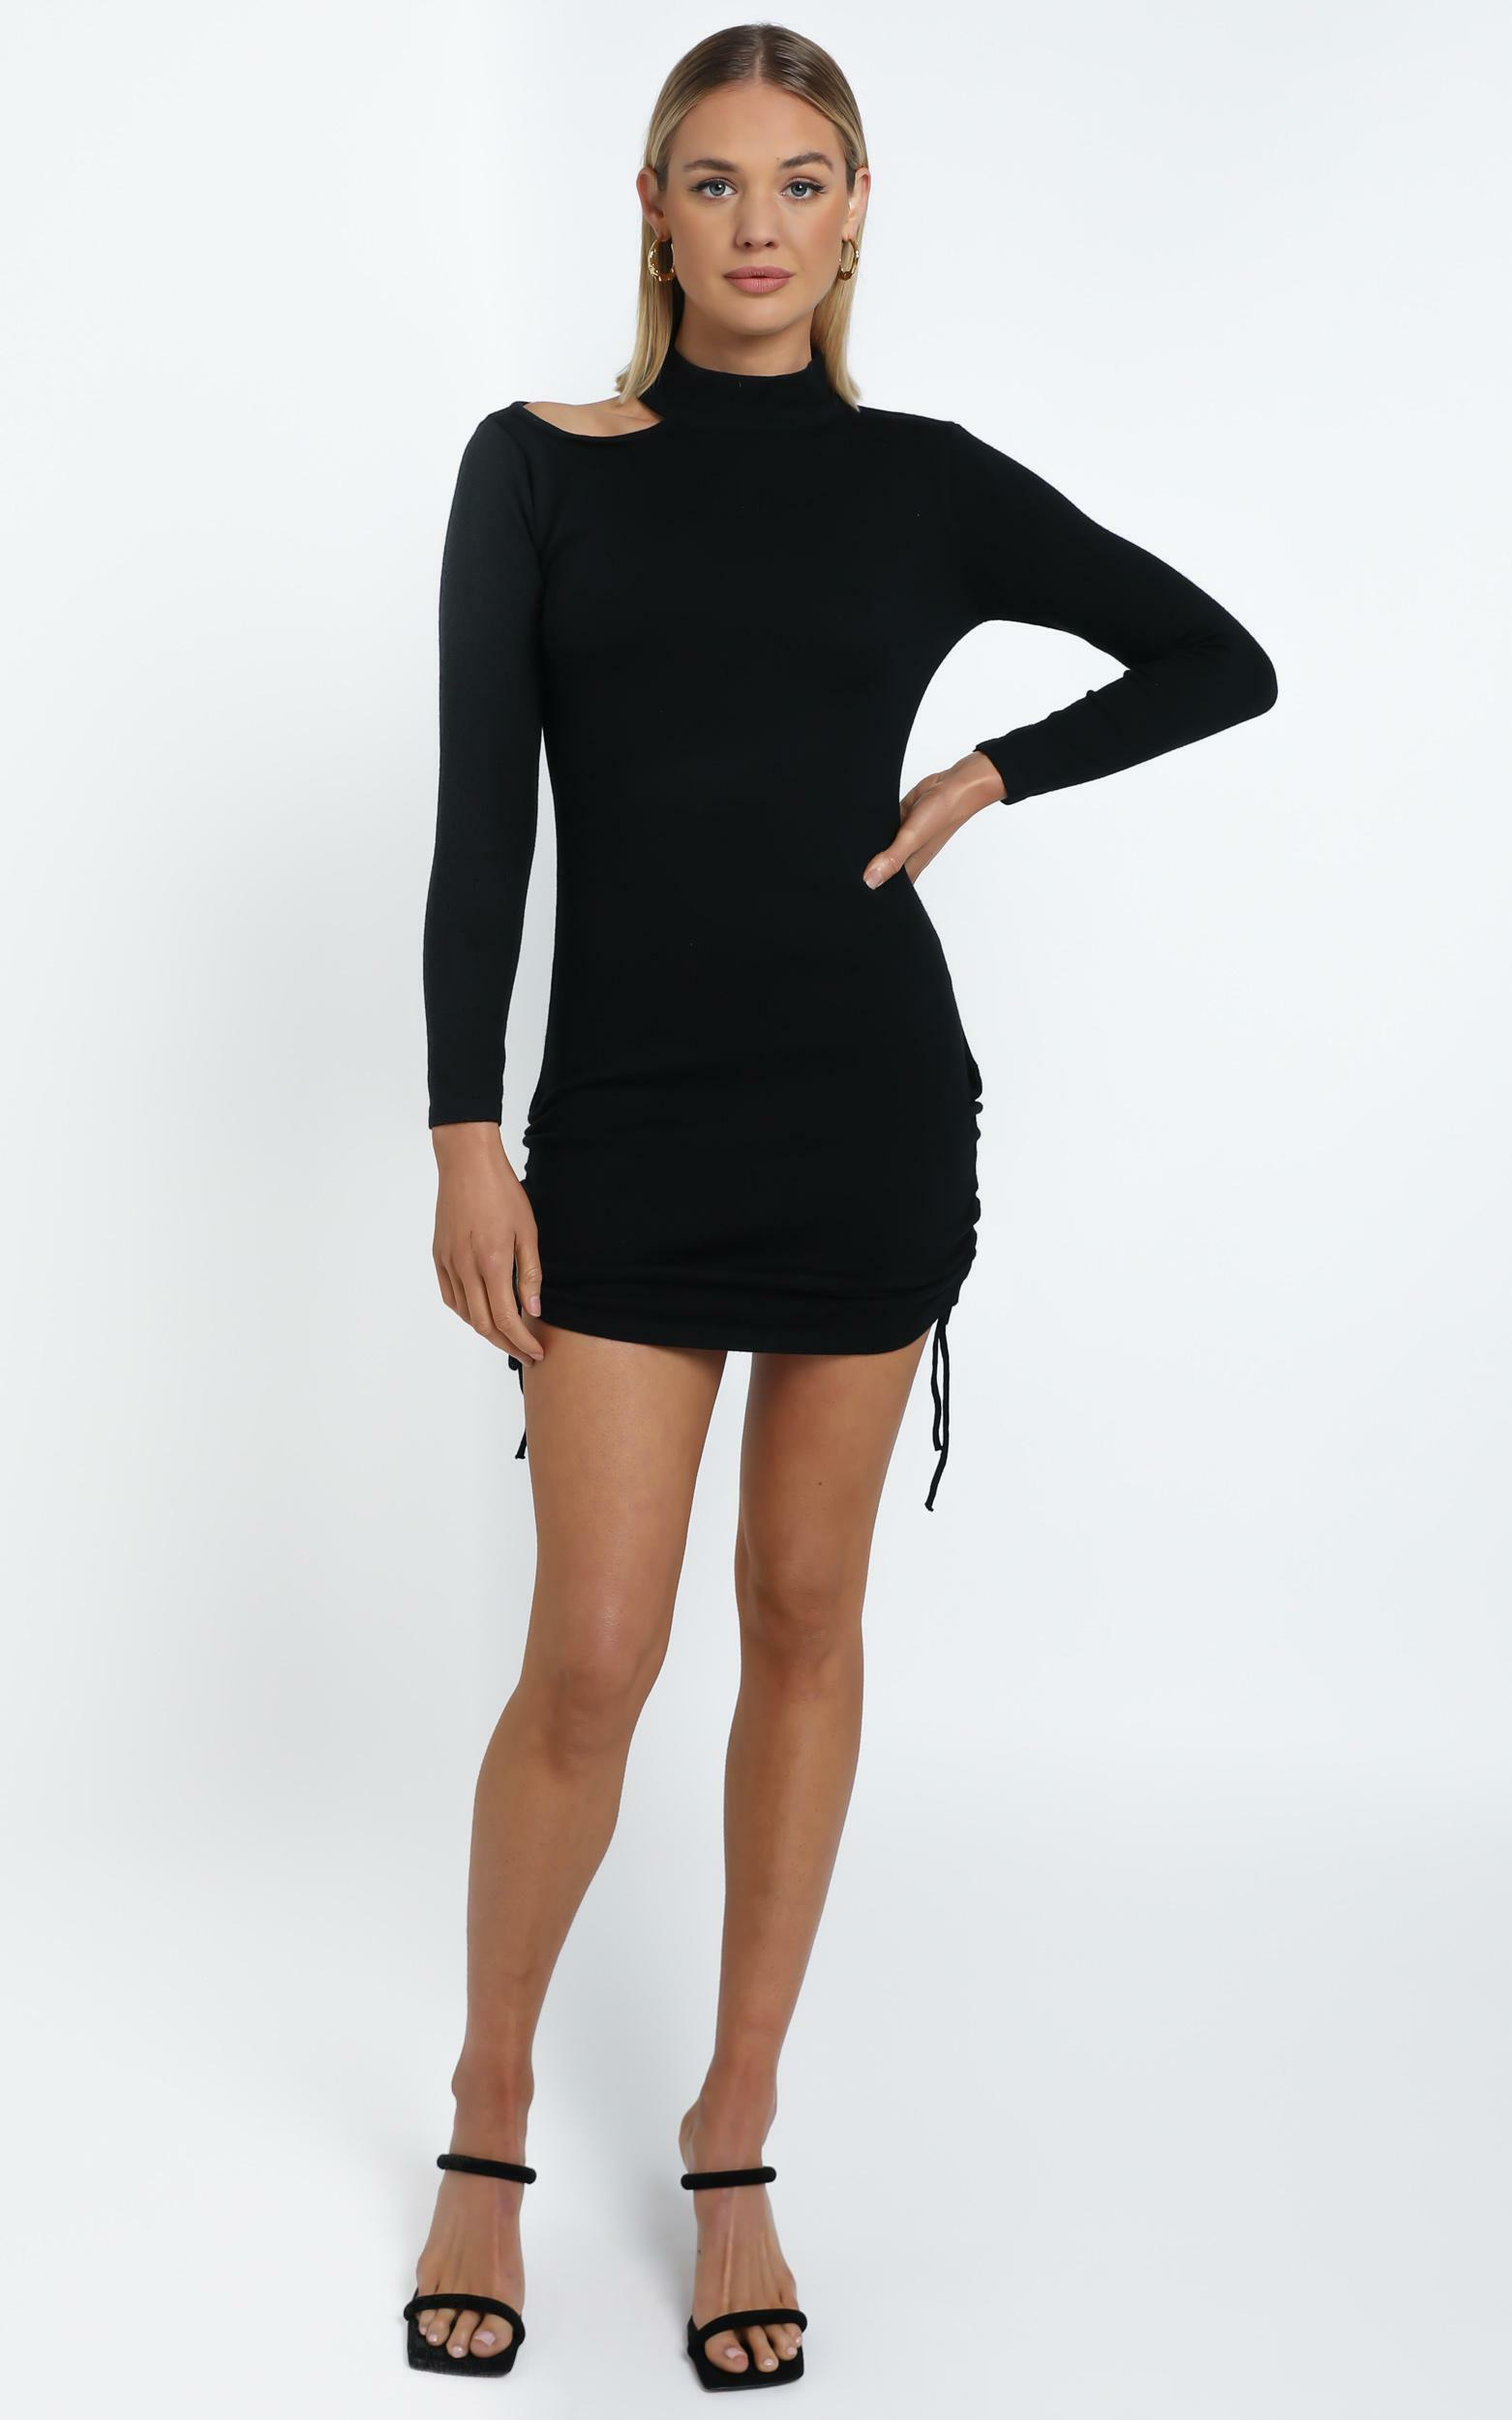 Samson Dress in Black - 12 (L), BLK1, hi-res image number null